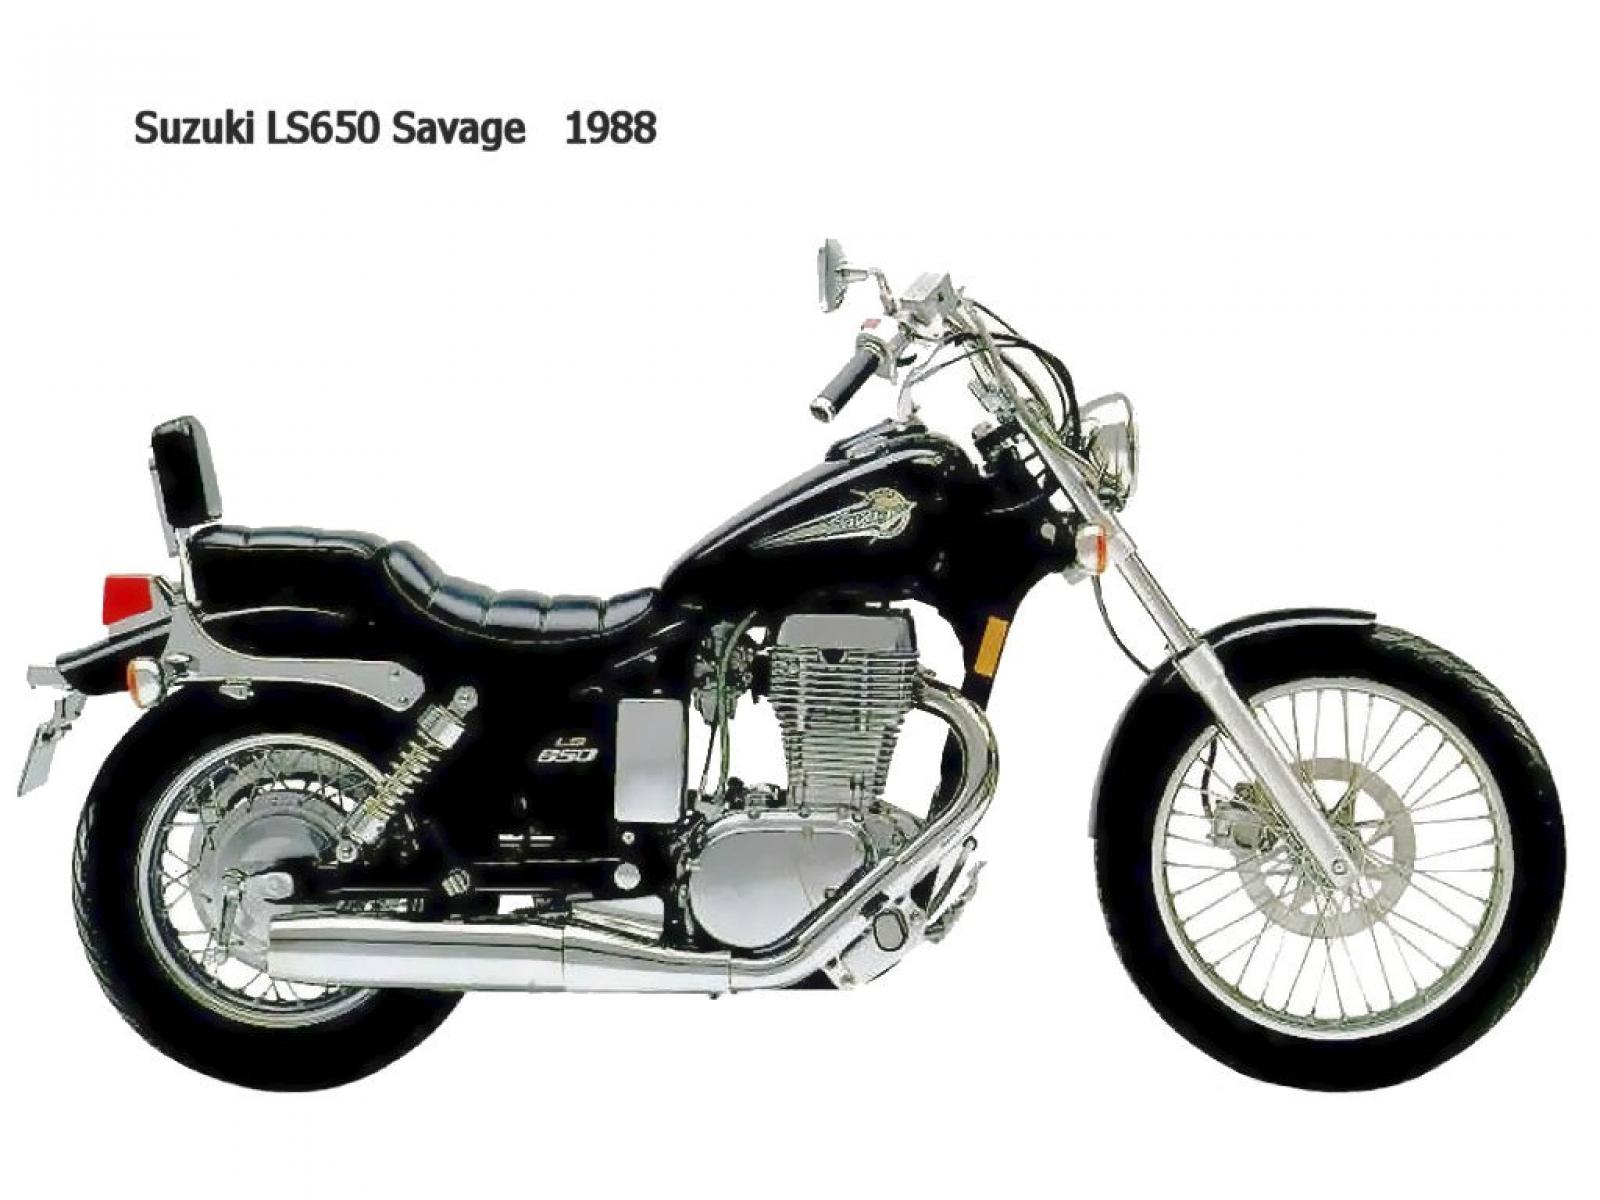 1989 suzuki ls 650 savage moto zombdrive com. Black Bedroom Furniture Sets. Home Design Ideas